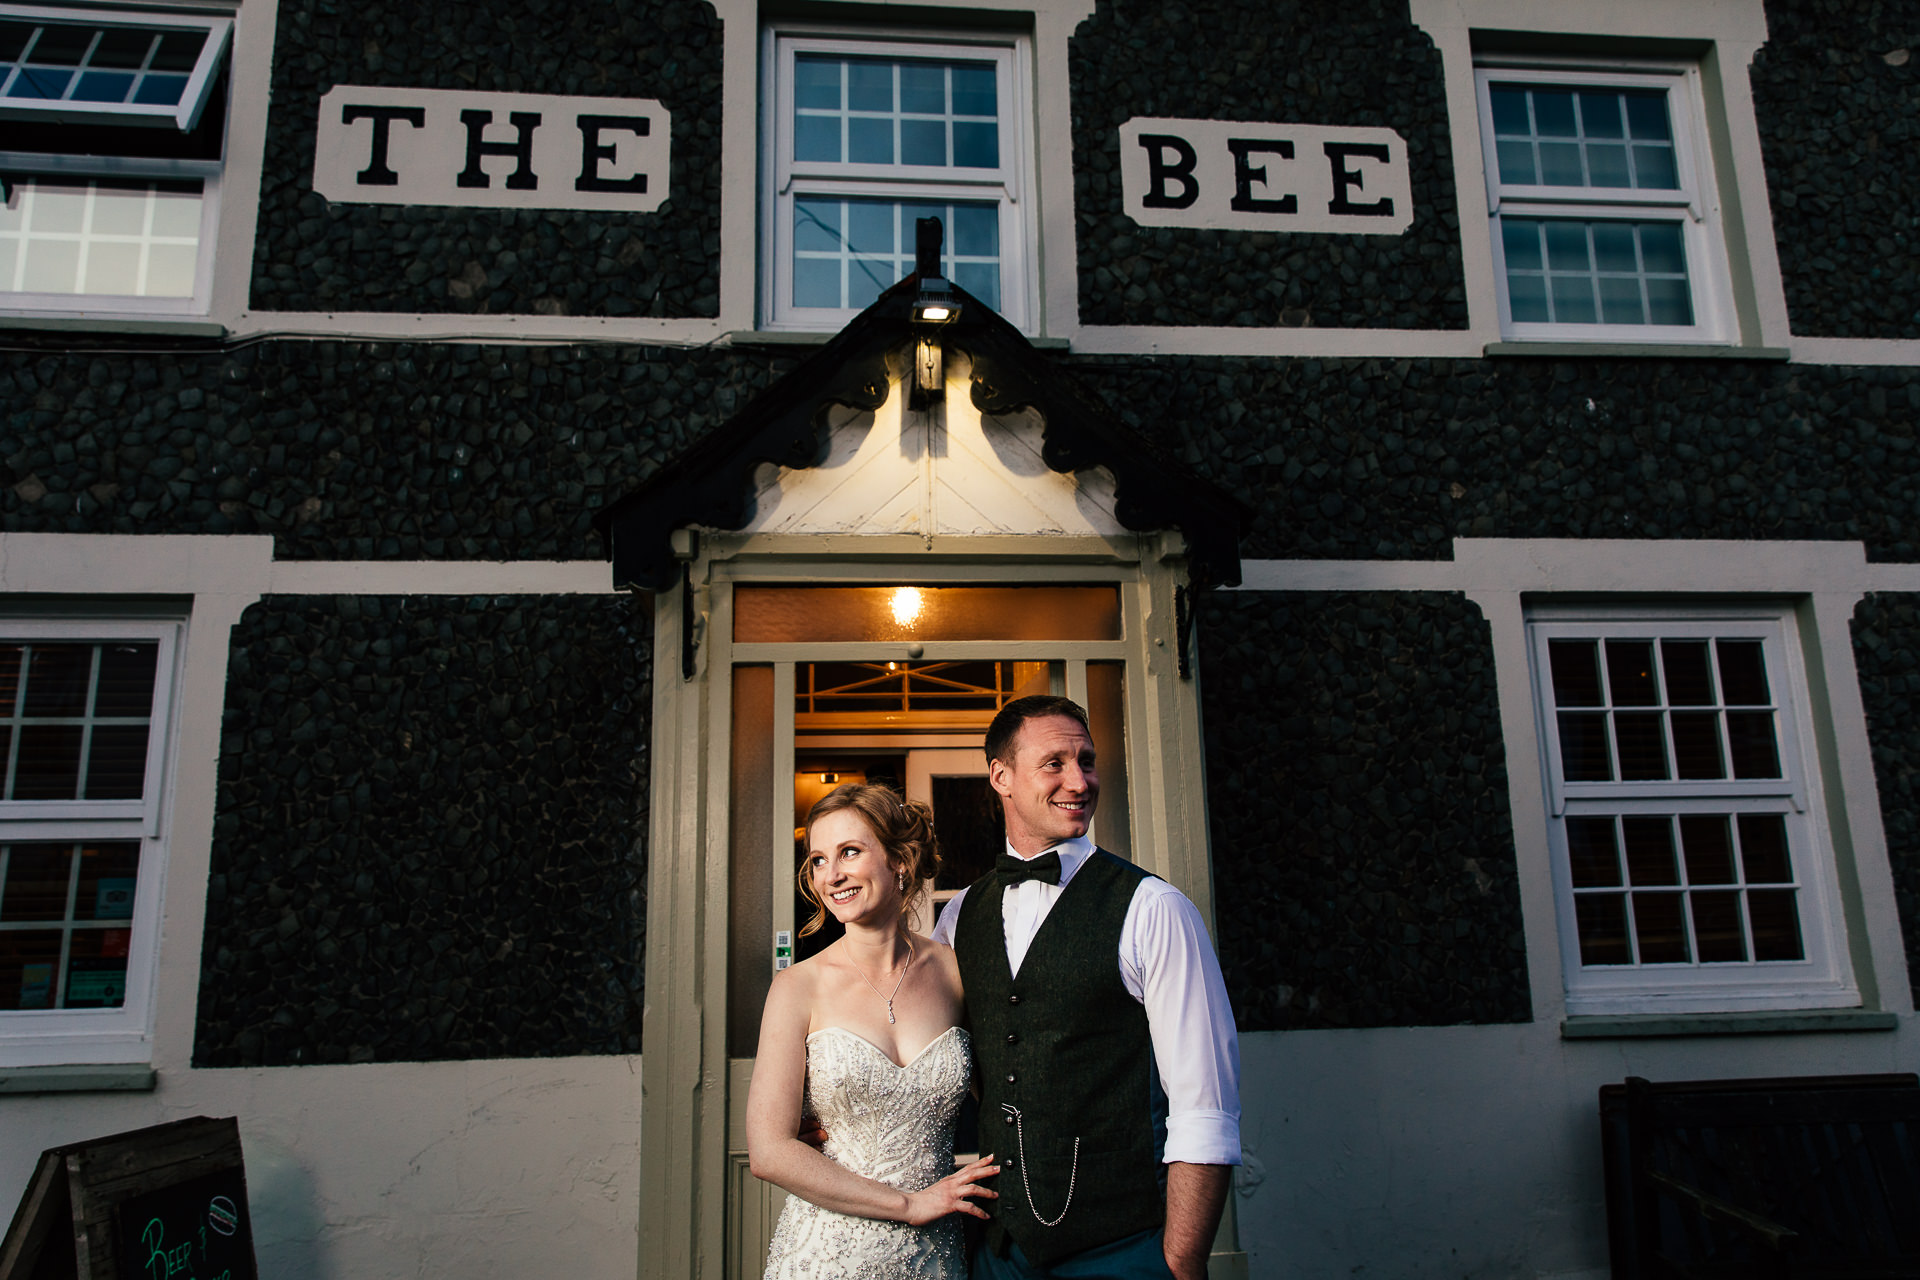 WEDDING PHOTOGRAPHYat the bee inn north wales